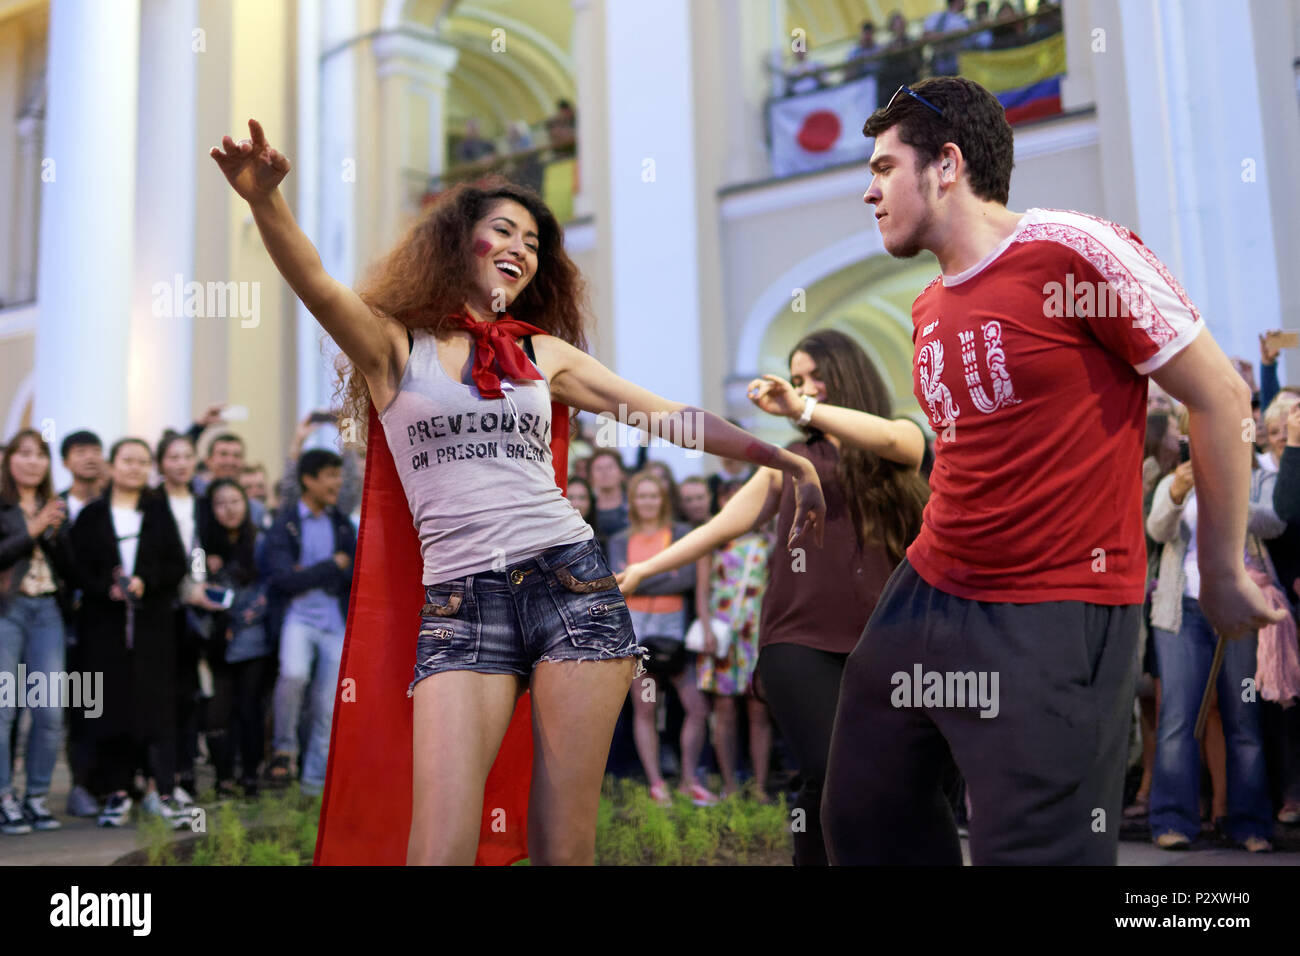 St. Petersburg, Russia - June 15, 2018: Moroccan football fans dancing on Nevsky avenue in Saint Petersburg on the day of first match of FIFA World Cu - Stock Image